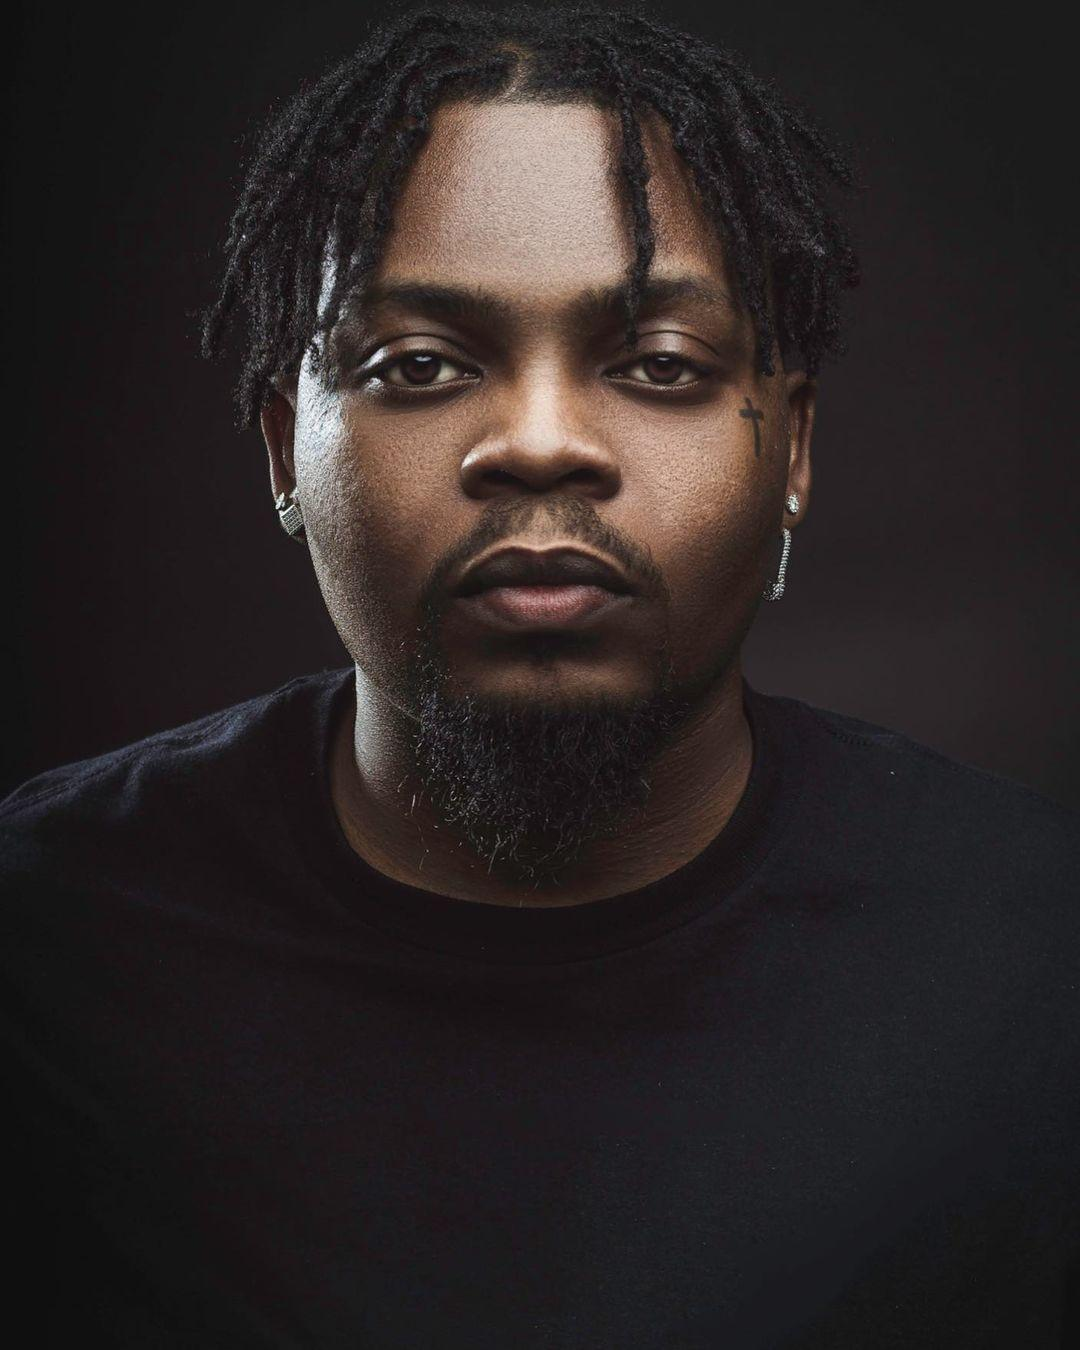 UEFA Champions League: Chelsea players celebrate with Olamide's 'Infinity' (Video)